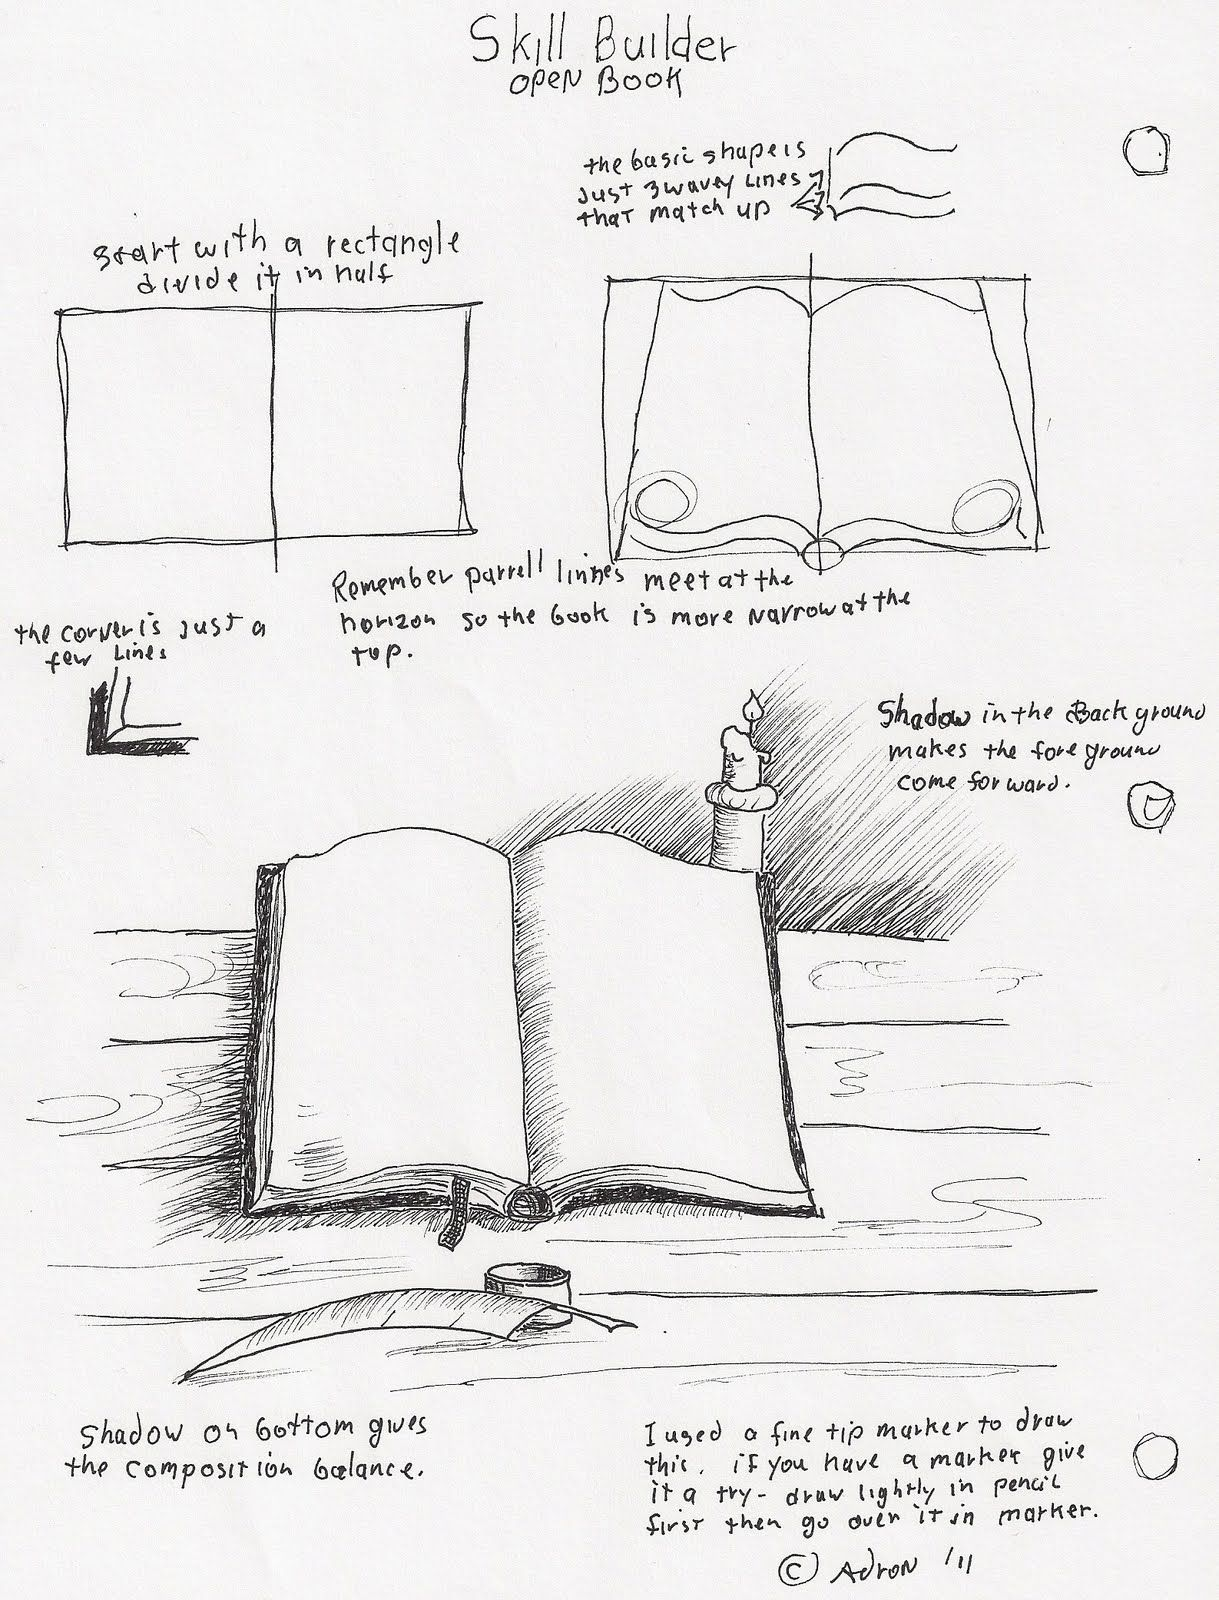 Adron S Art Lesson Plans How To Draw An Open Book With Pen And Ink For The Young Artist